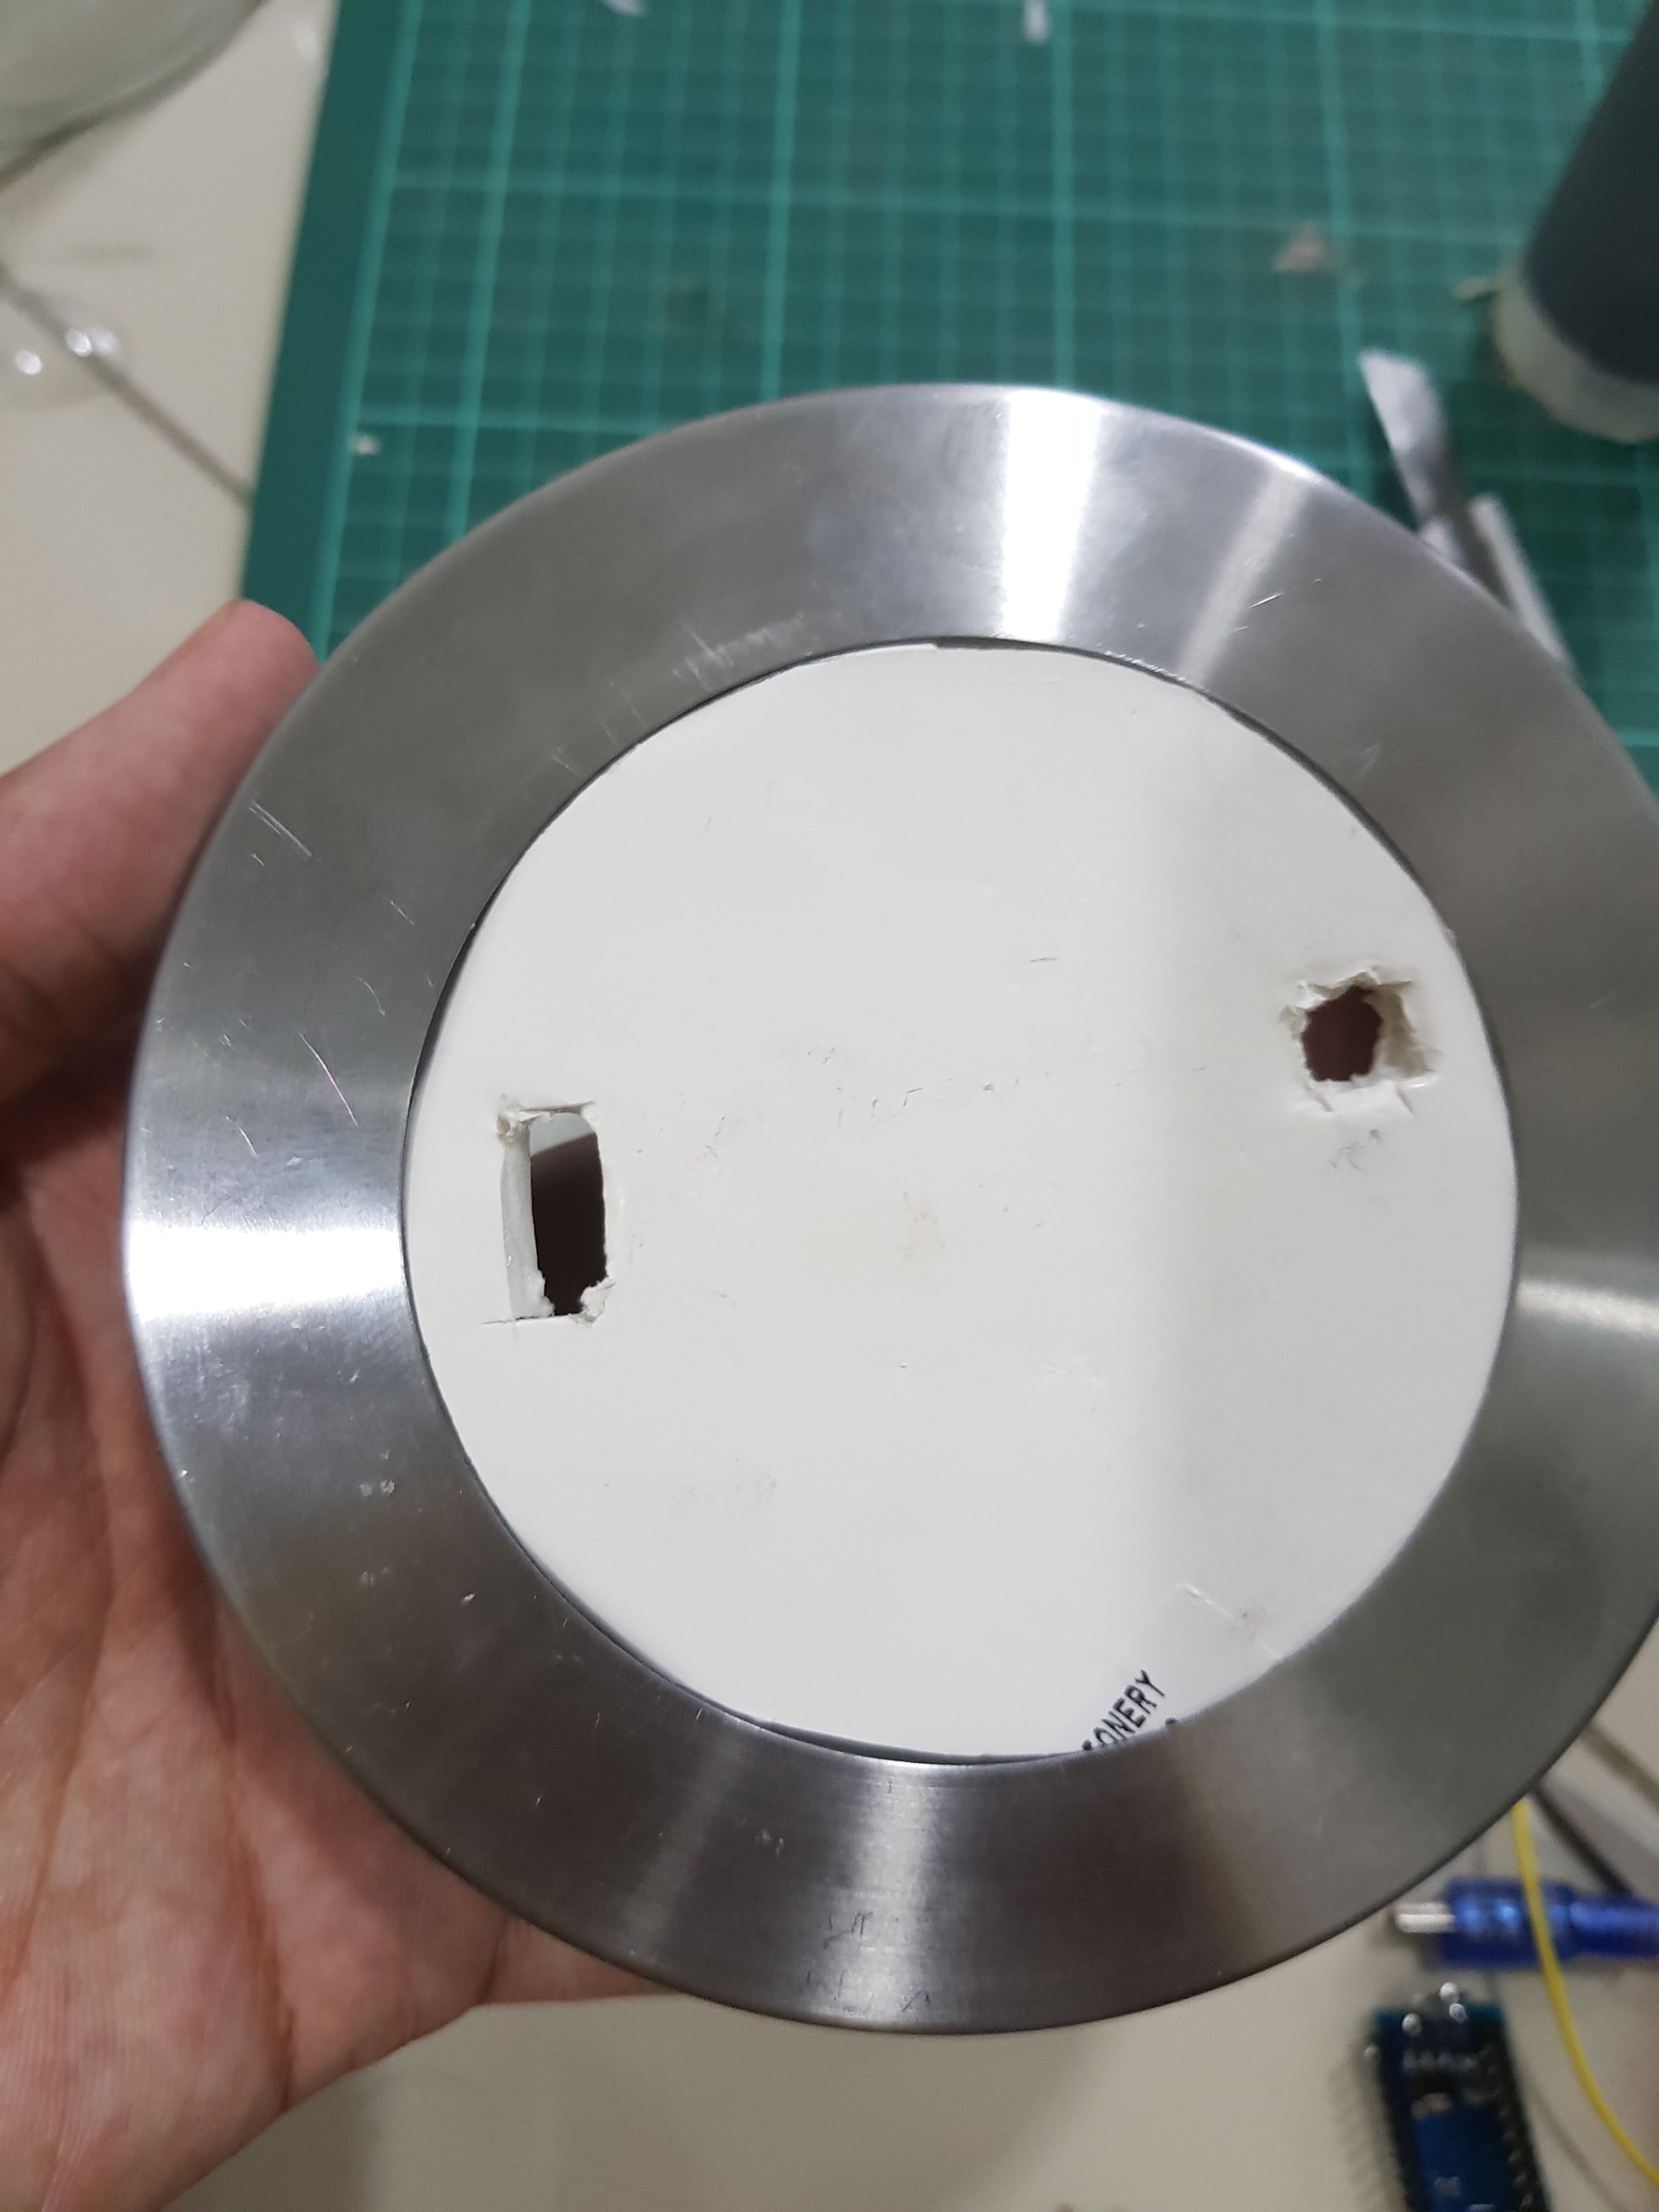 An extra hole for the cable to go through.